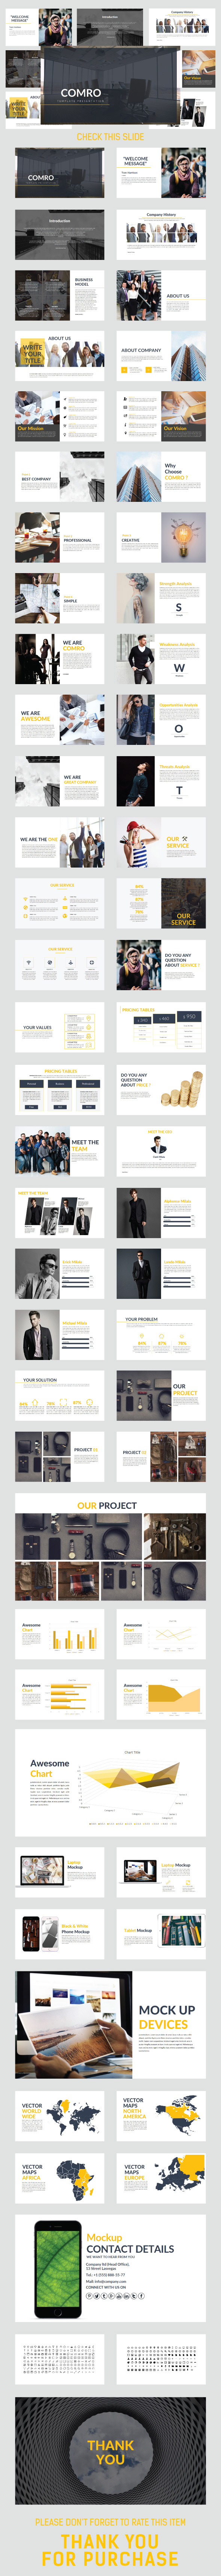 COMRO Keynote Template - Business Keynote Templates